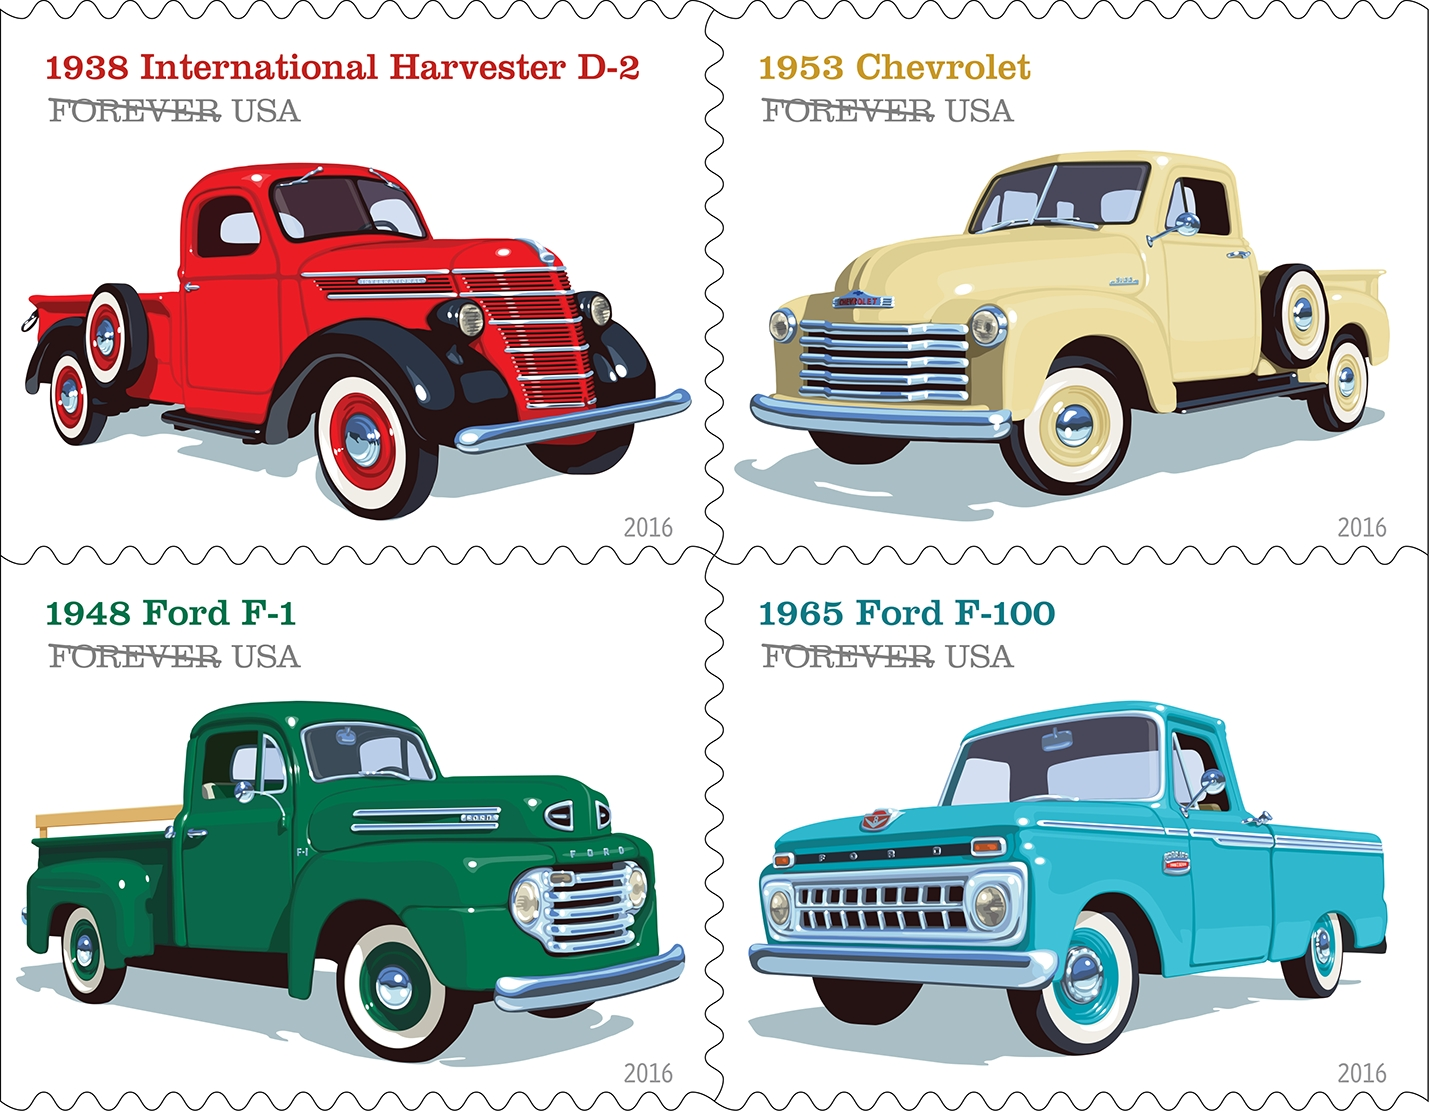 Star Trek, Sarah Vaughan, soda fountains: The new stamps for 2016